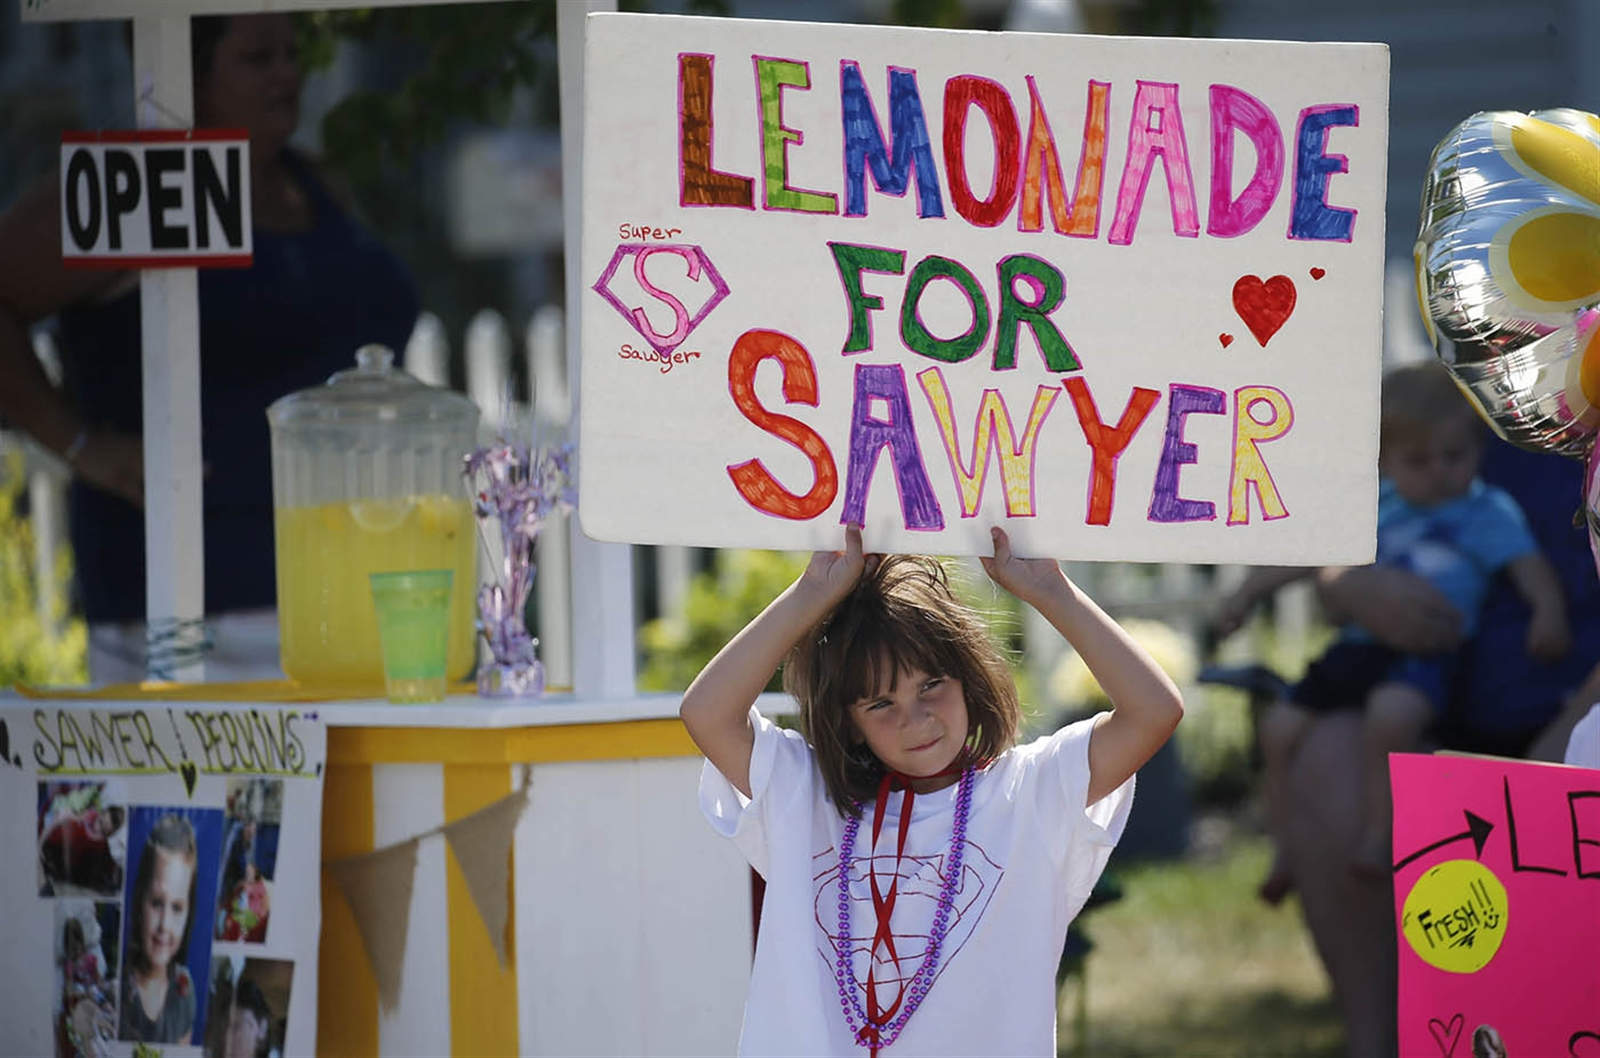 Disney Schunk, 6, holds up a sign to attract passersby to a lemonade stand her family set up to raise money for a family friend with brain cancer.